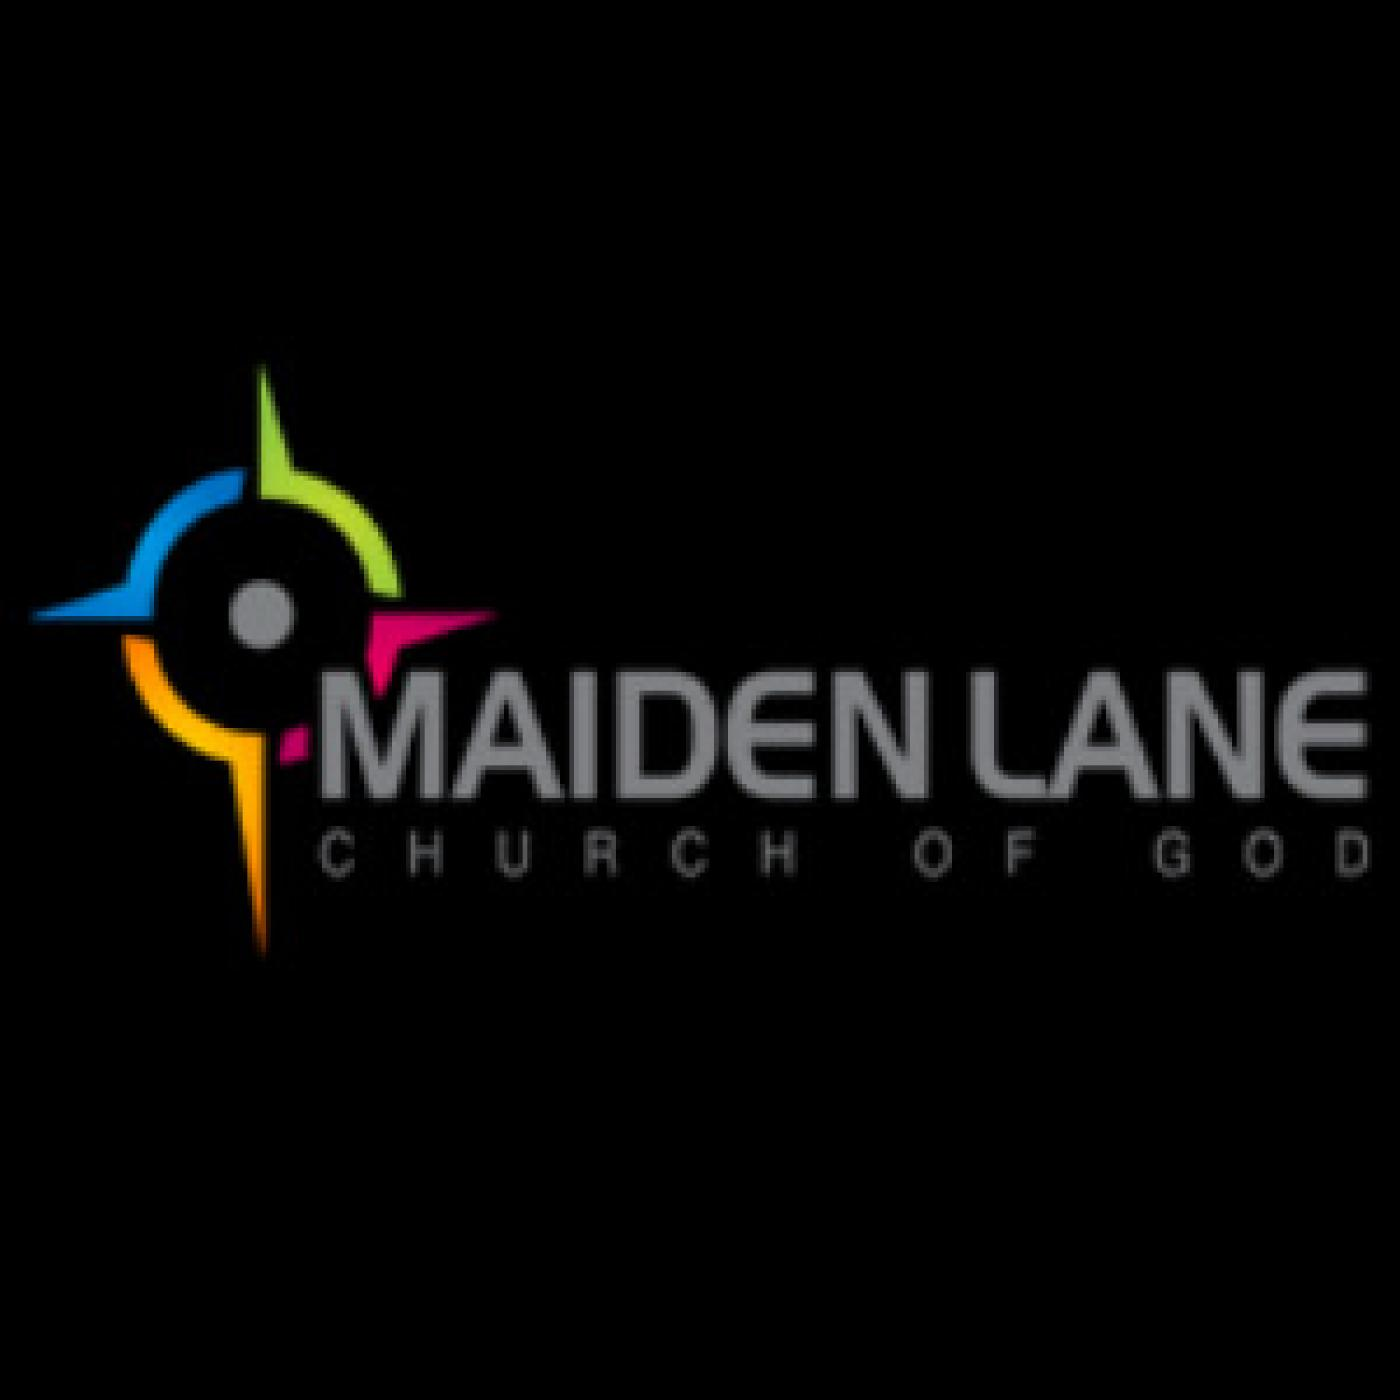 Maiden Lane Church of God Media